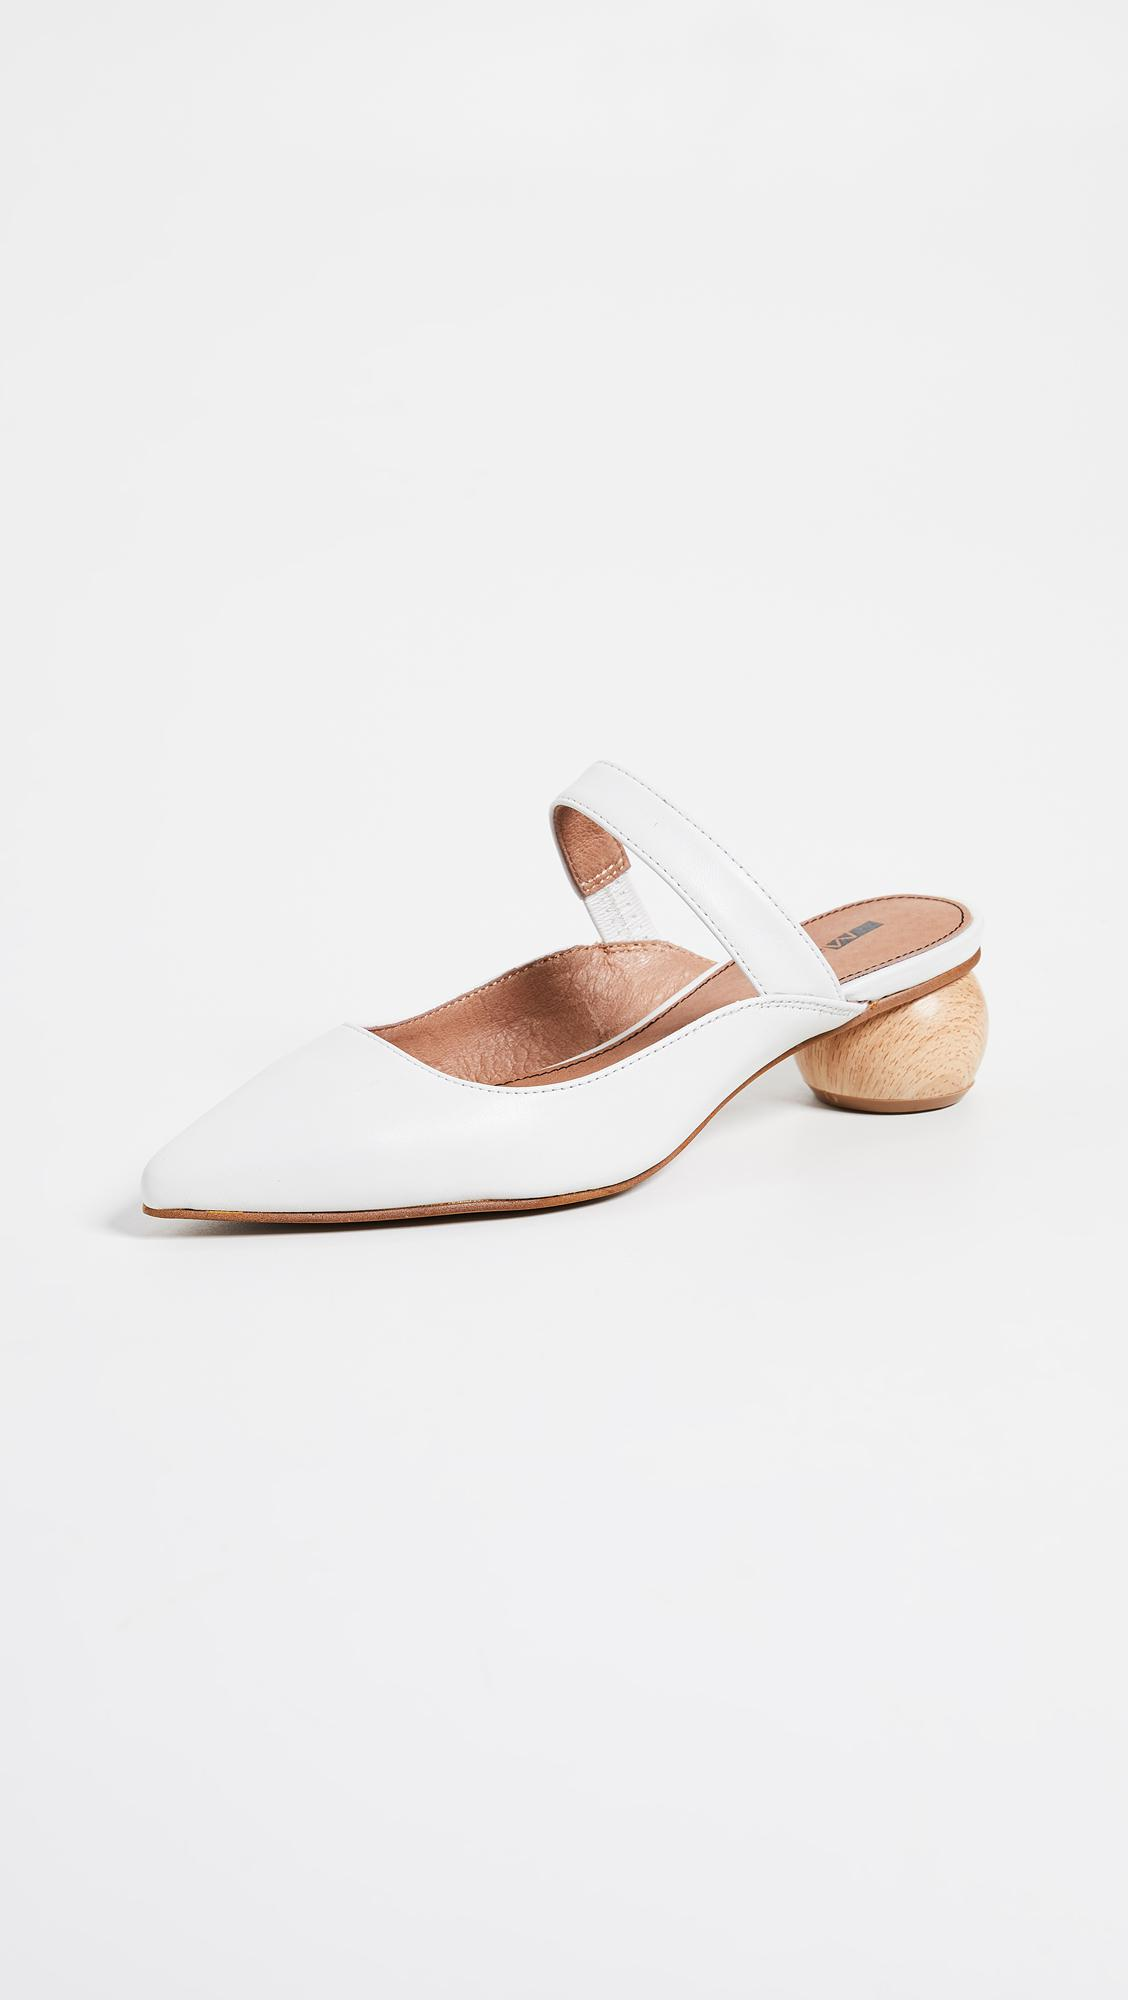 ecc83d2a462 Matiko Virca Point Toe Mules in White - Lyst